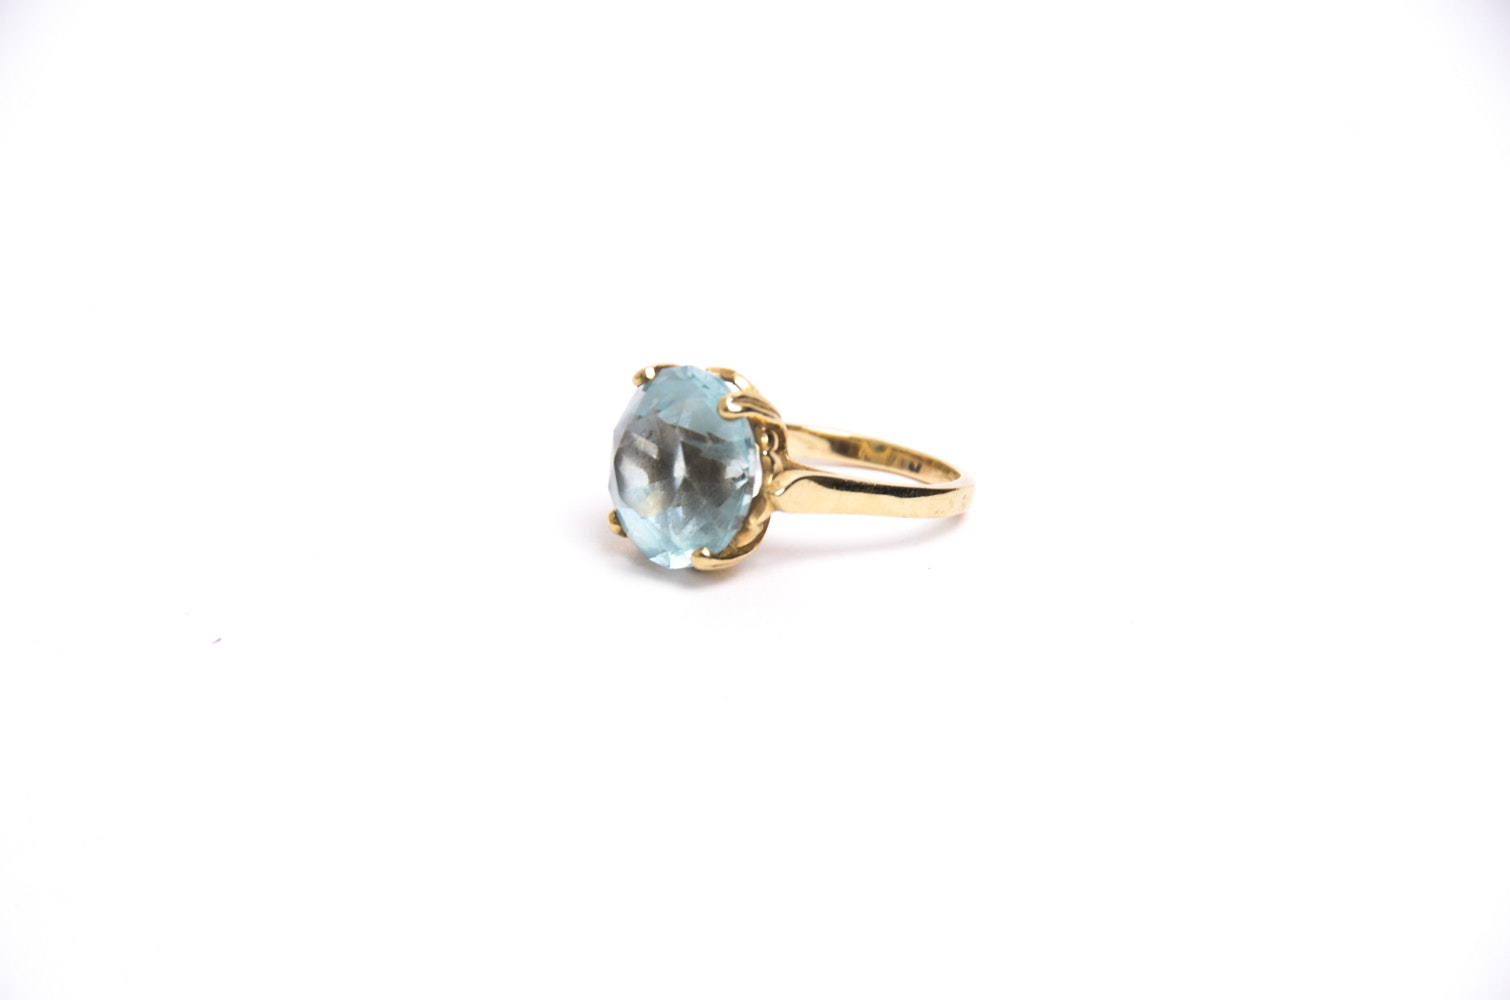 14K Gold and 11.00 CT Blue Topaz Ring